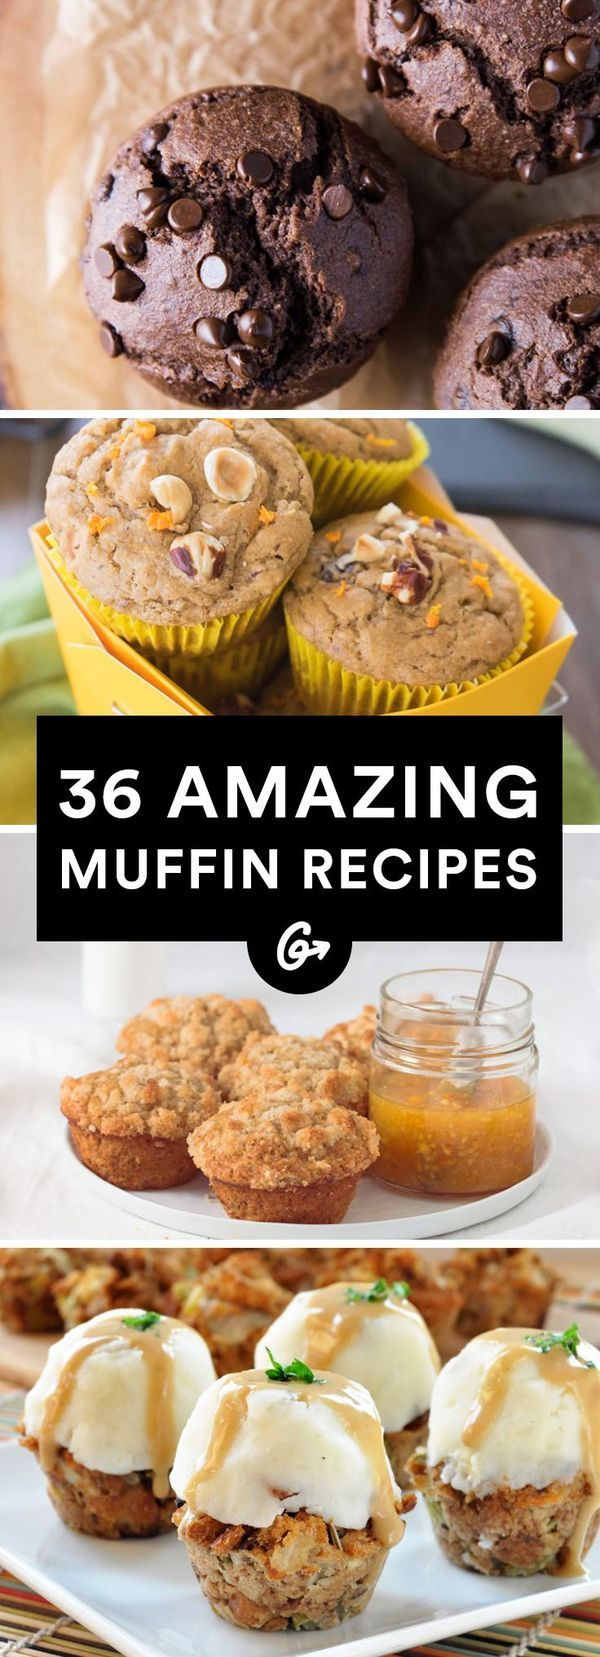 Muffins tend to get bad press, as they're usually just cupcakes without the frosting, but Greatist complied a bunch of muffin recipes that are actually pretty good for you! Let's get baking!